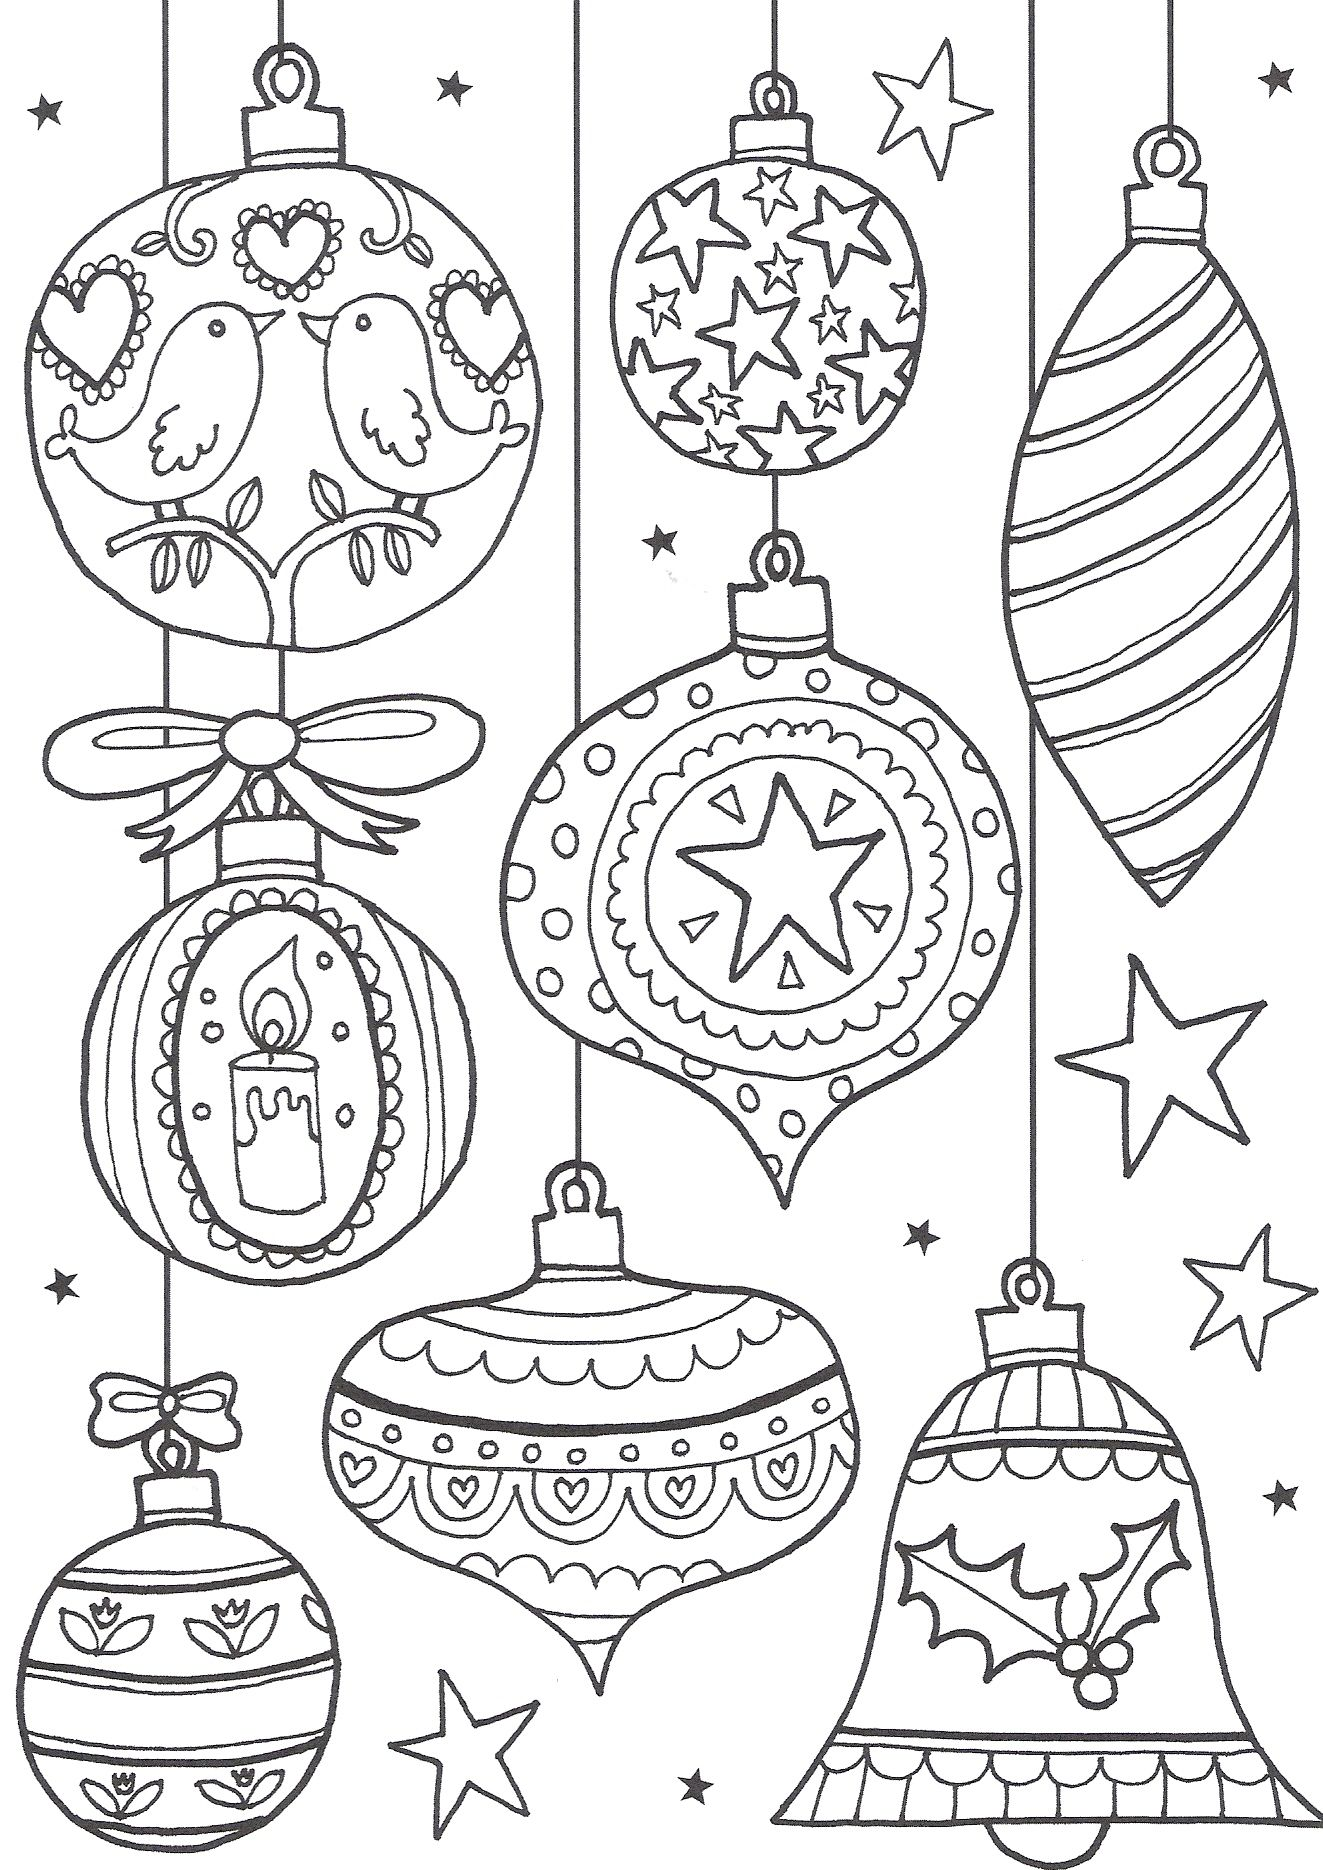 Unique Christmas Coloring Pages With Free Colouring For Adults The Ultimate Roundup